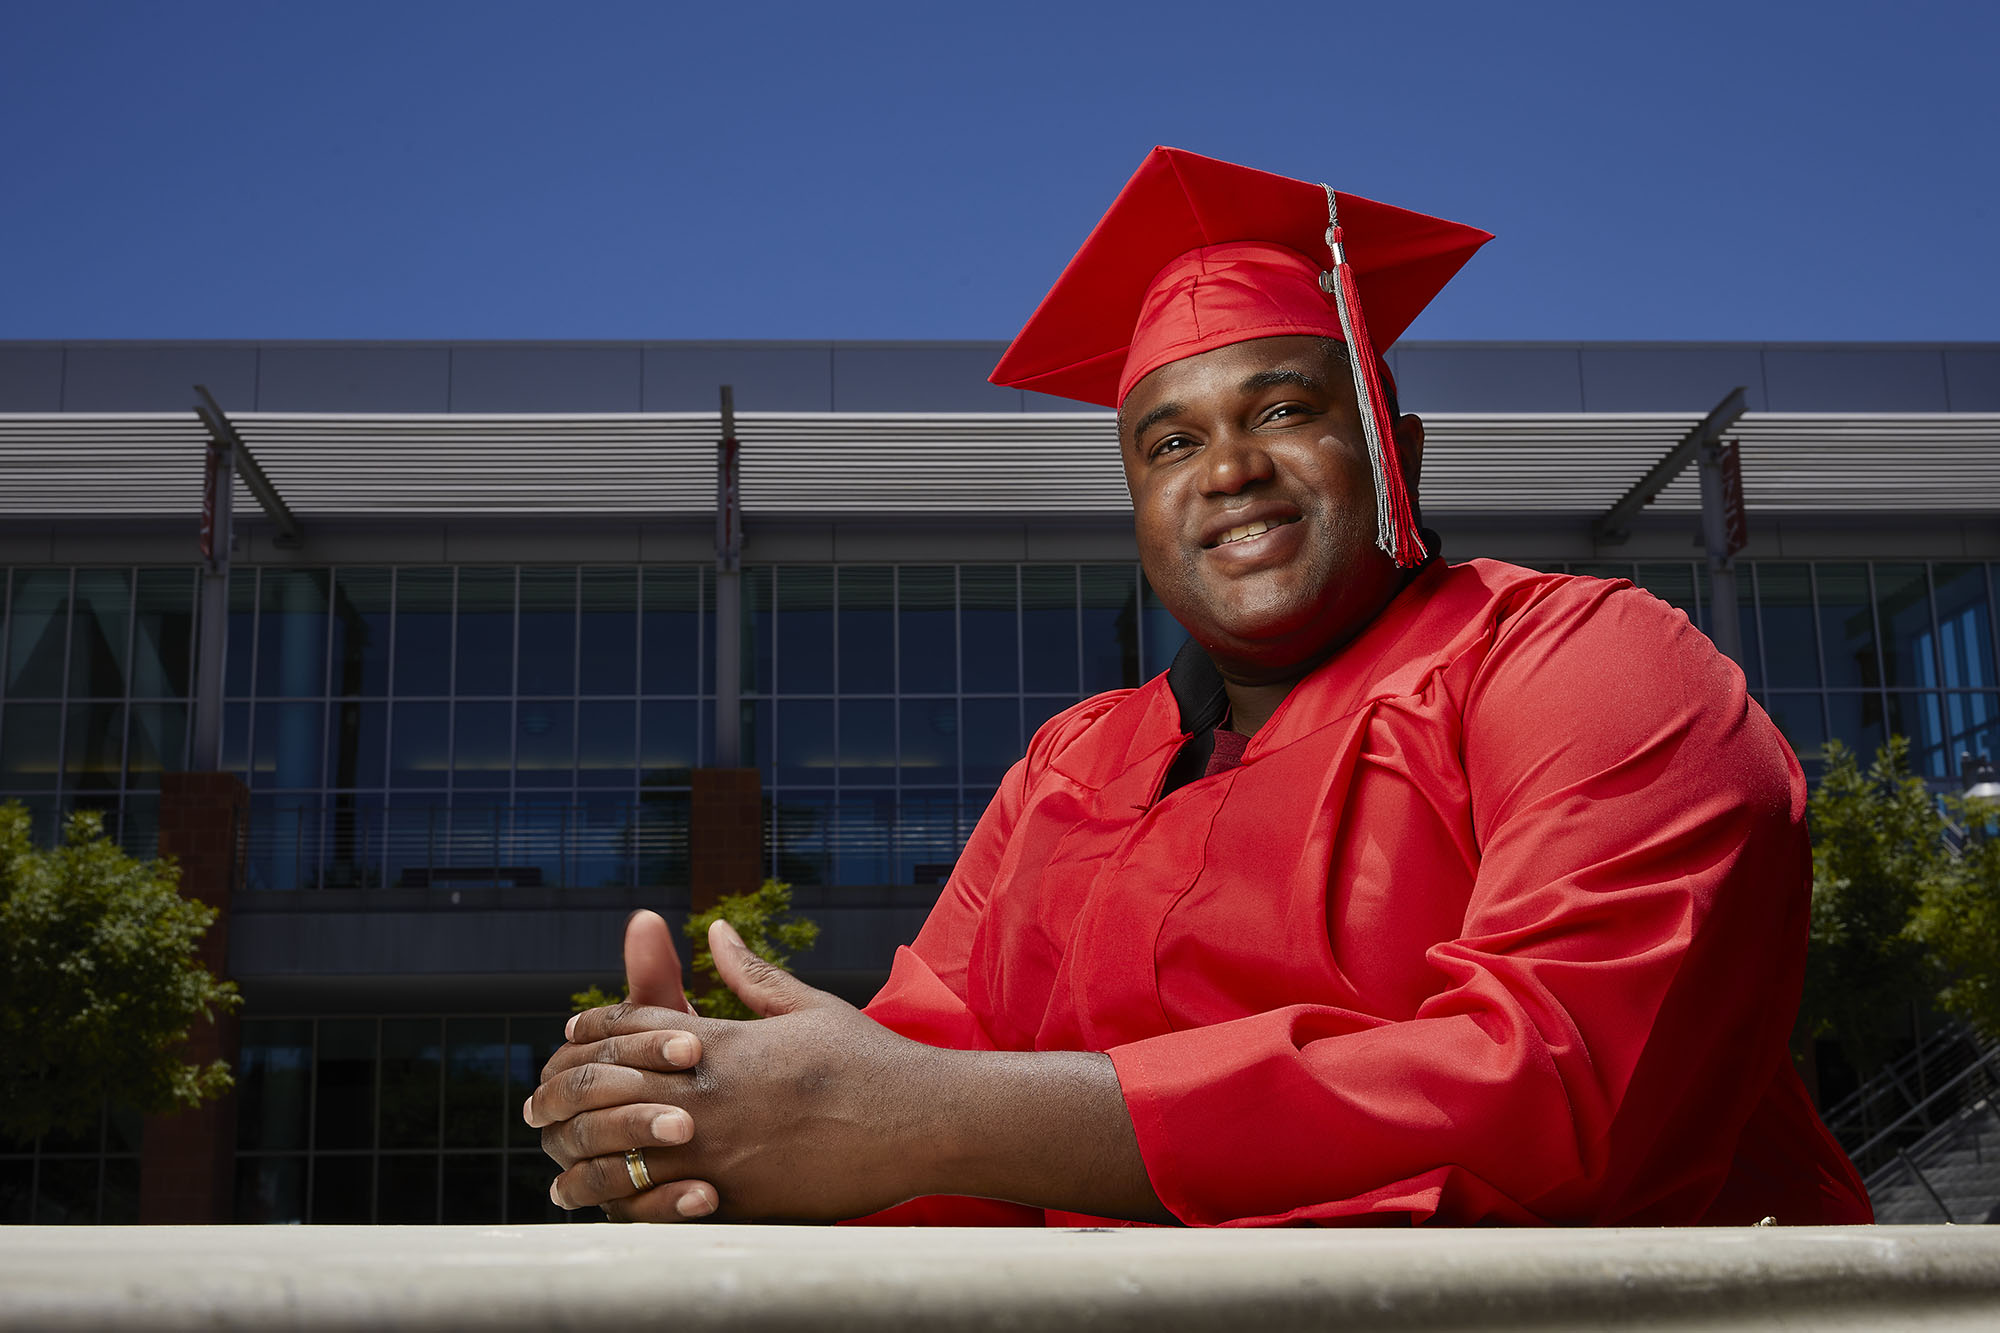 A Degree Two Decades In The Making News Center University Of Nevada Las Vegas This video provides tips for freshman going to the university of nevada, las vegas to make their experience easier. https www unlv edu news article degree two decades making